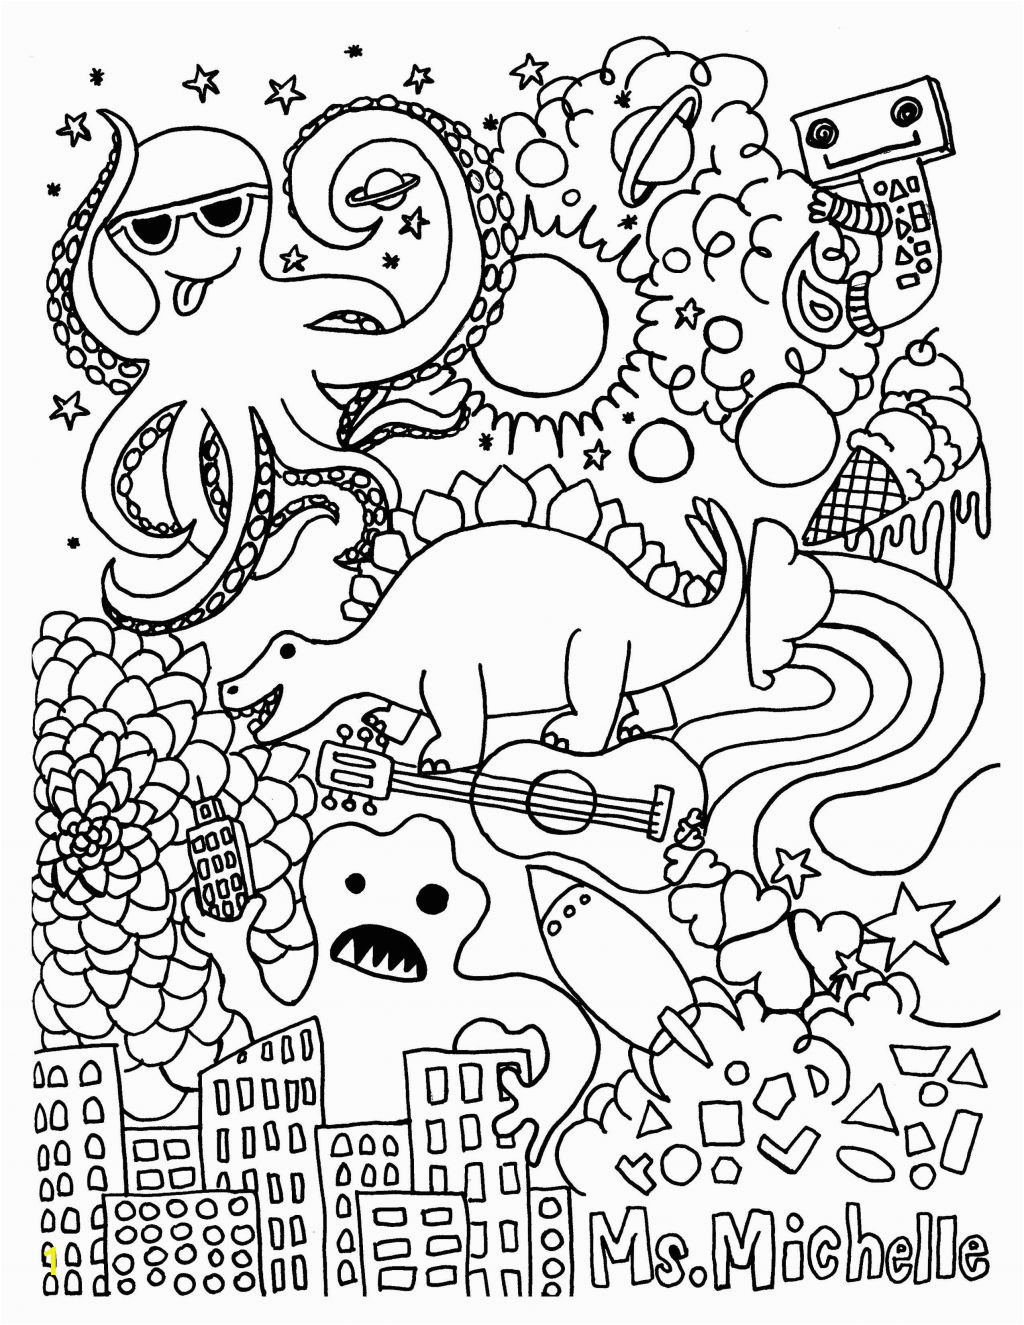 swear word coloring pages free art swear word coloring pages printable free posted by michelle of swear word coloring pages free 1024x1325